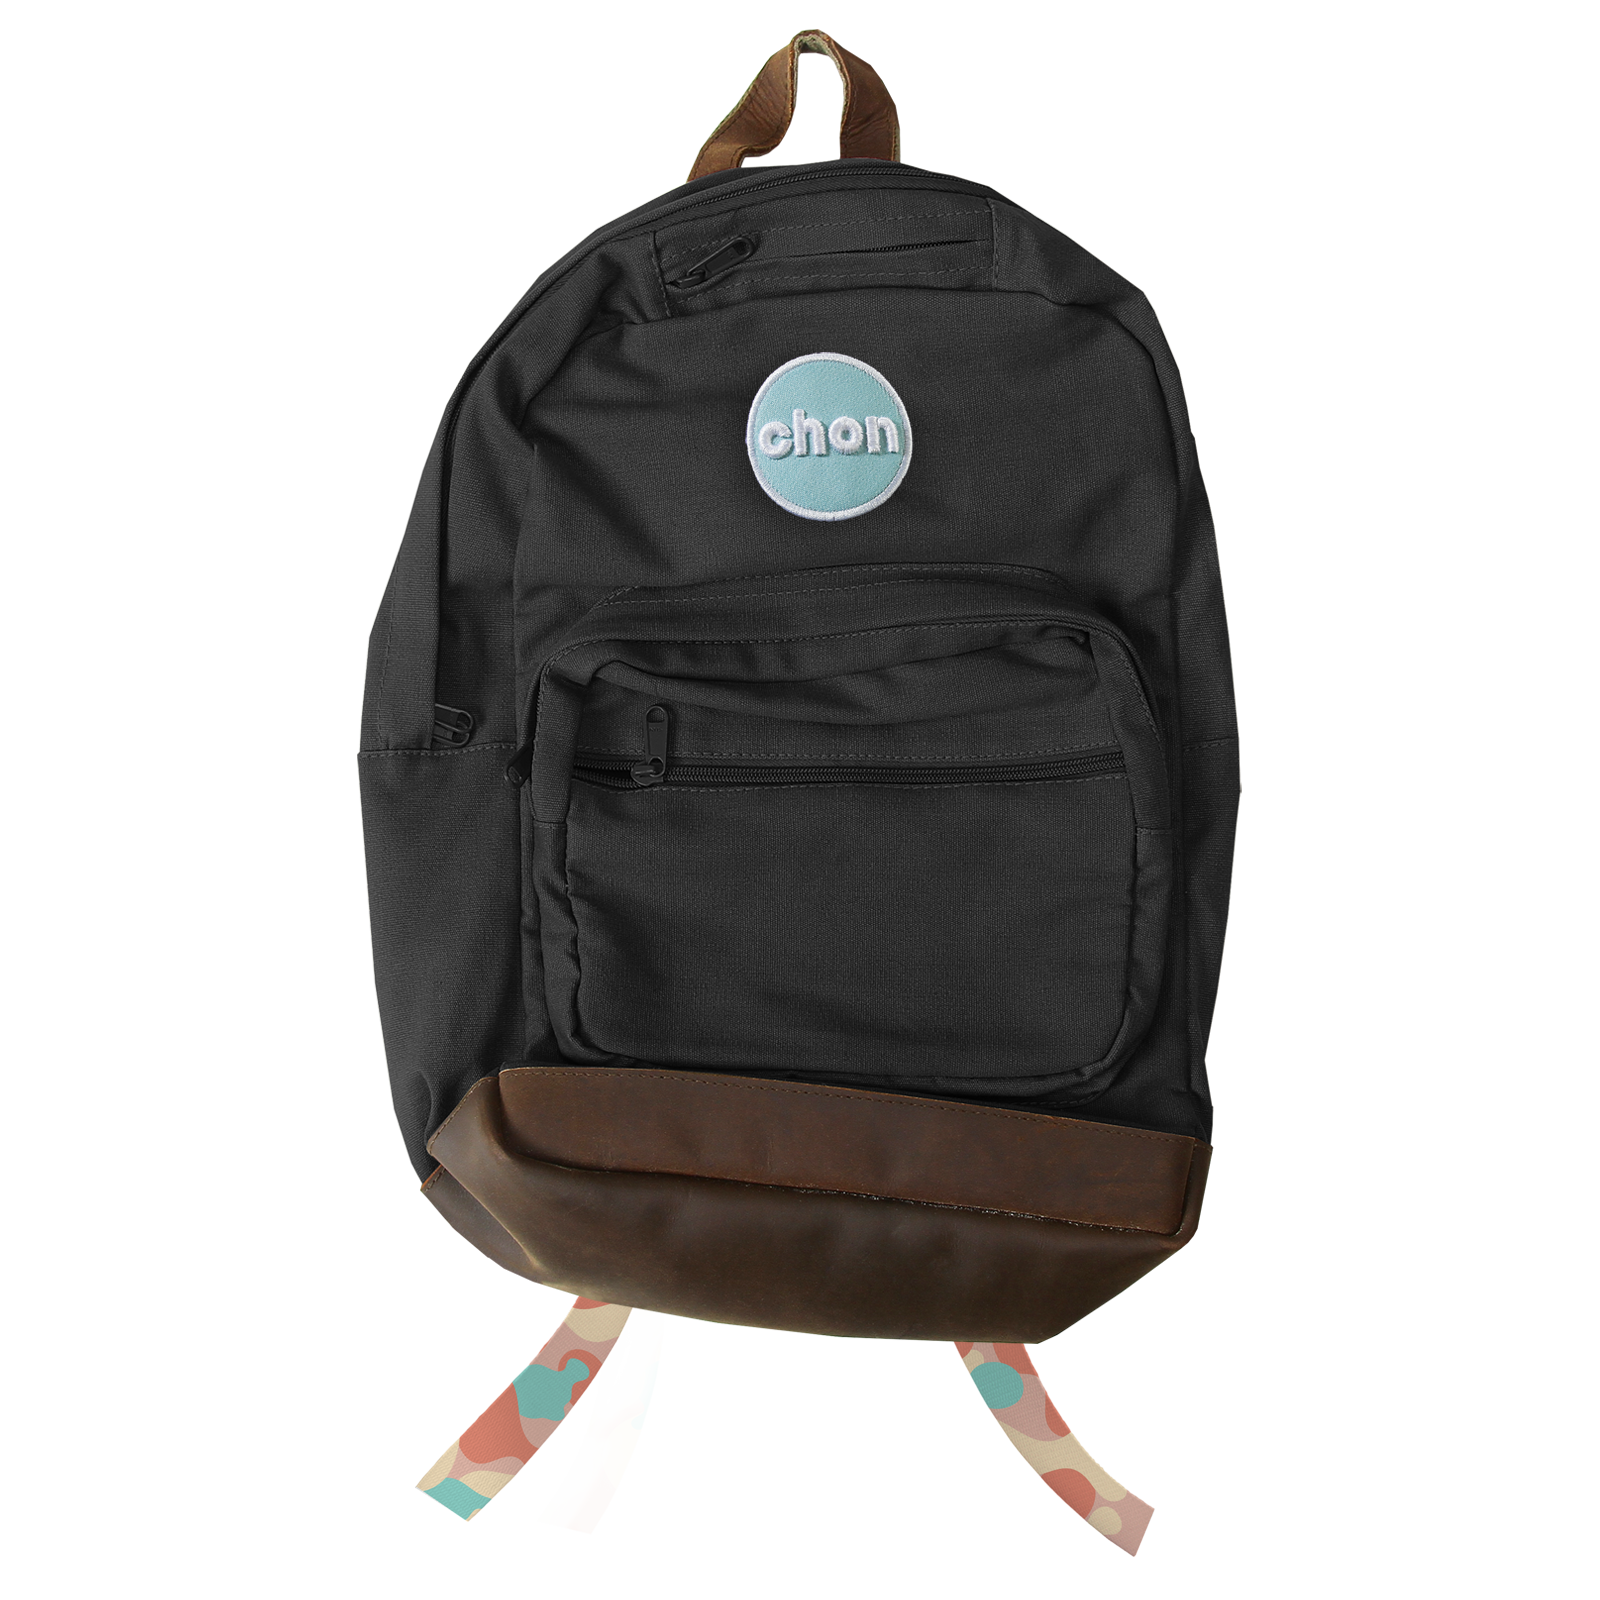 Chon Backpack